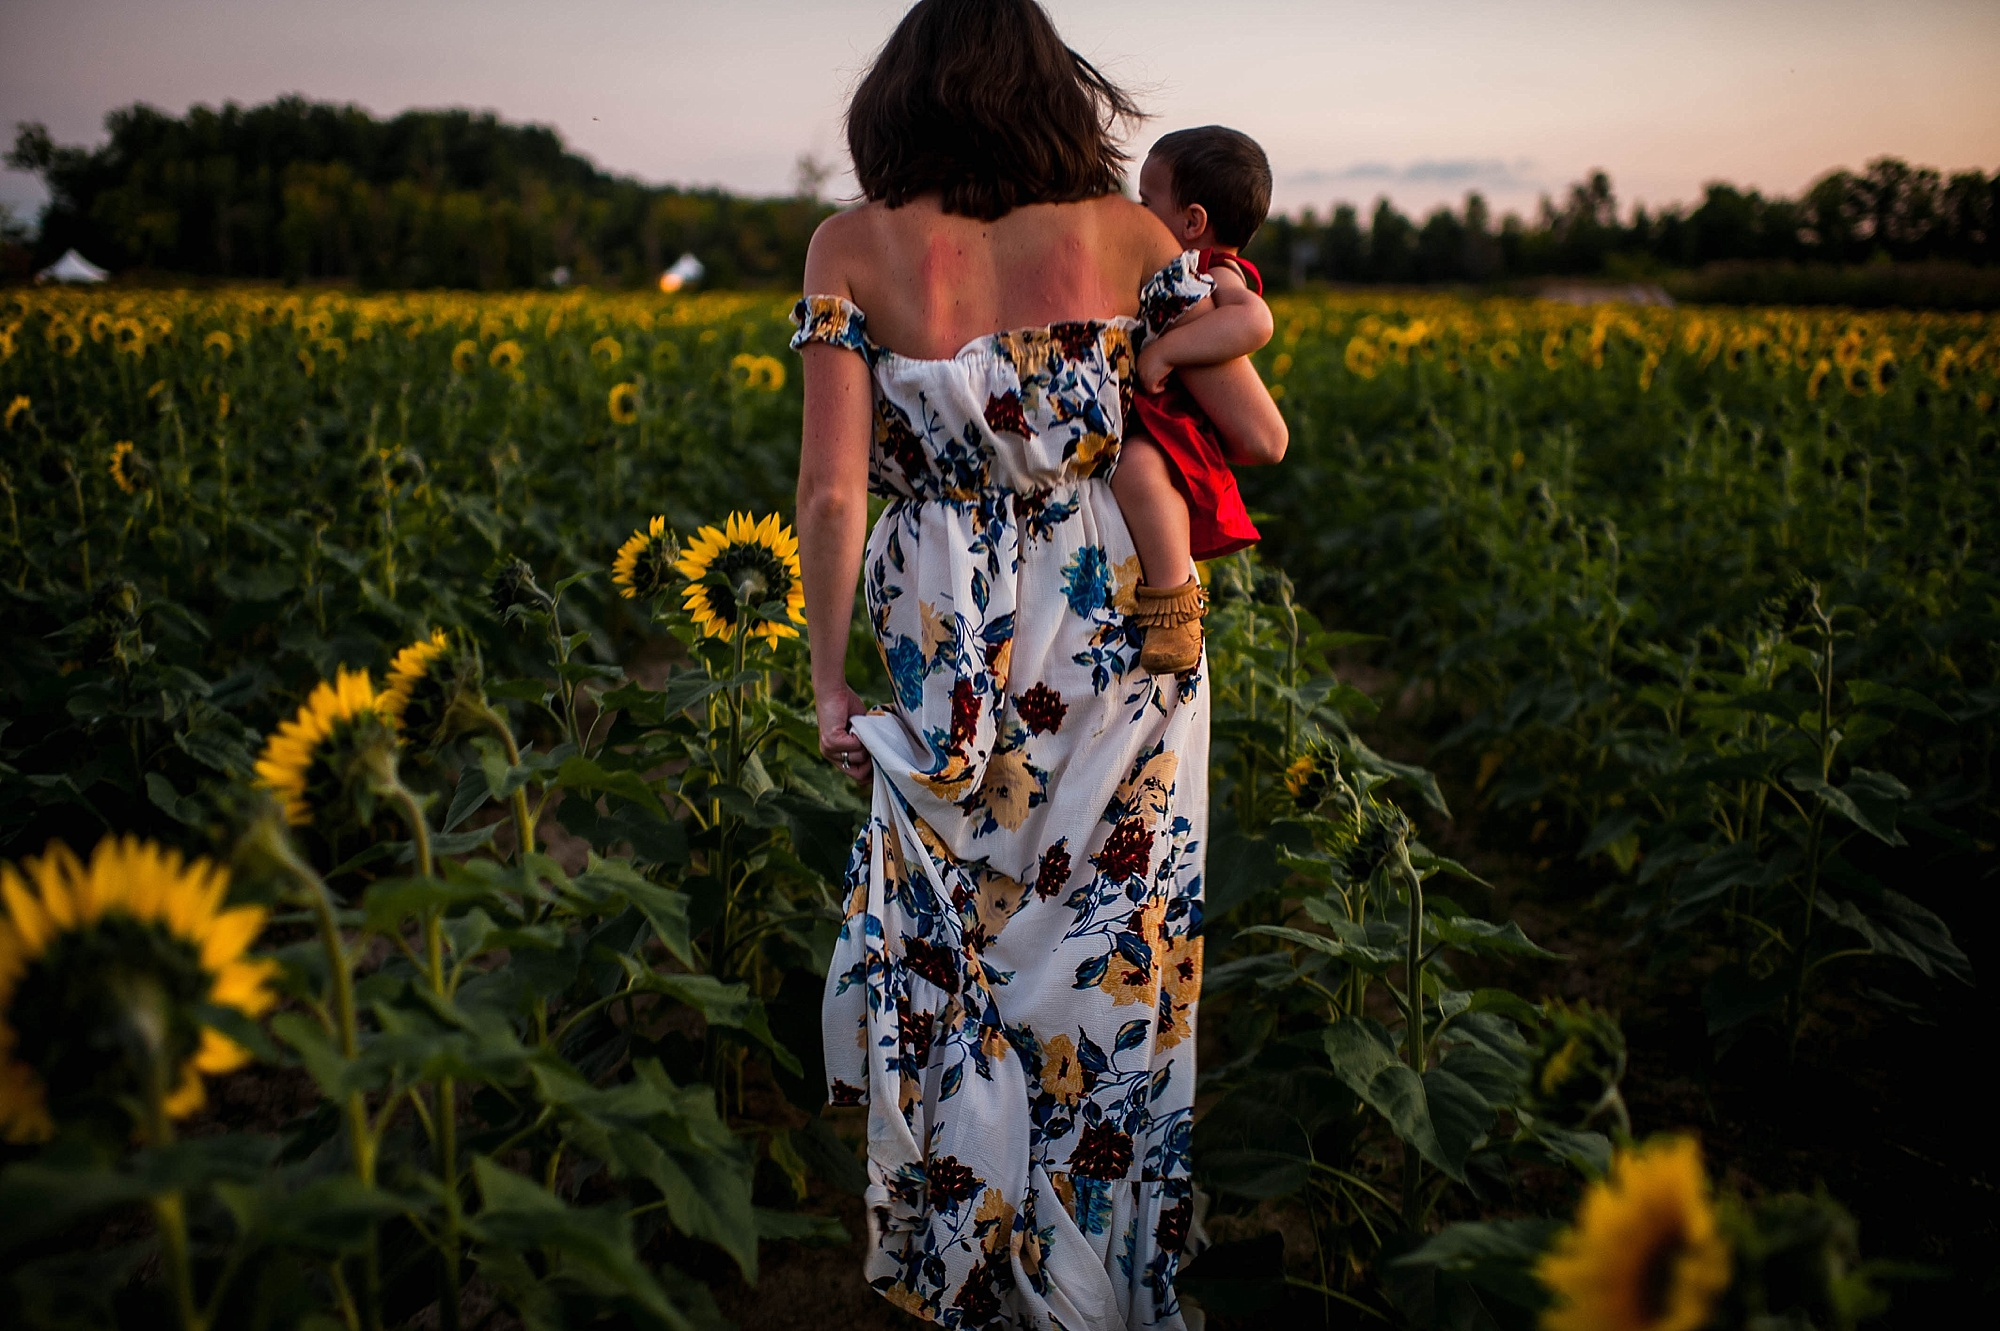 lauren-grayson-photography-cleveland-ohio-photographer-sunflower-fields-sunset-golden-hour-photo-shoot-mommy-and-me-family-child-photographer_0585.jpg